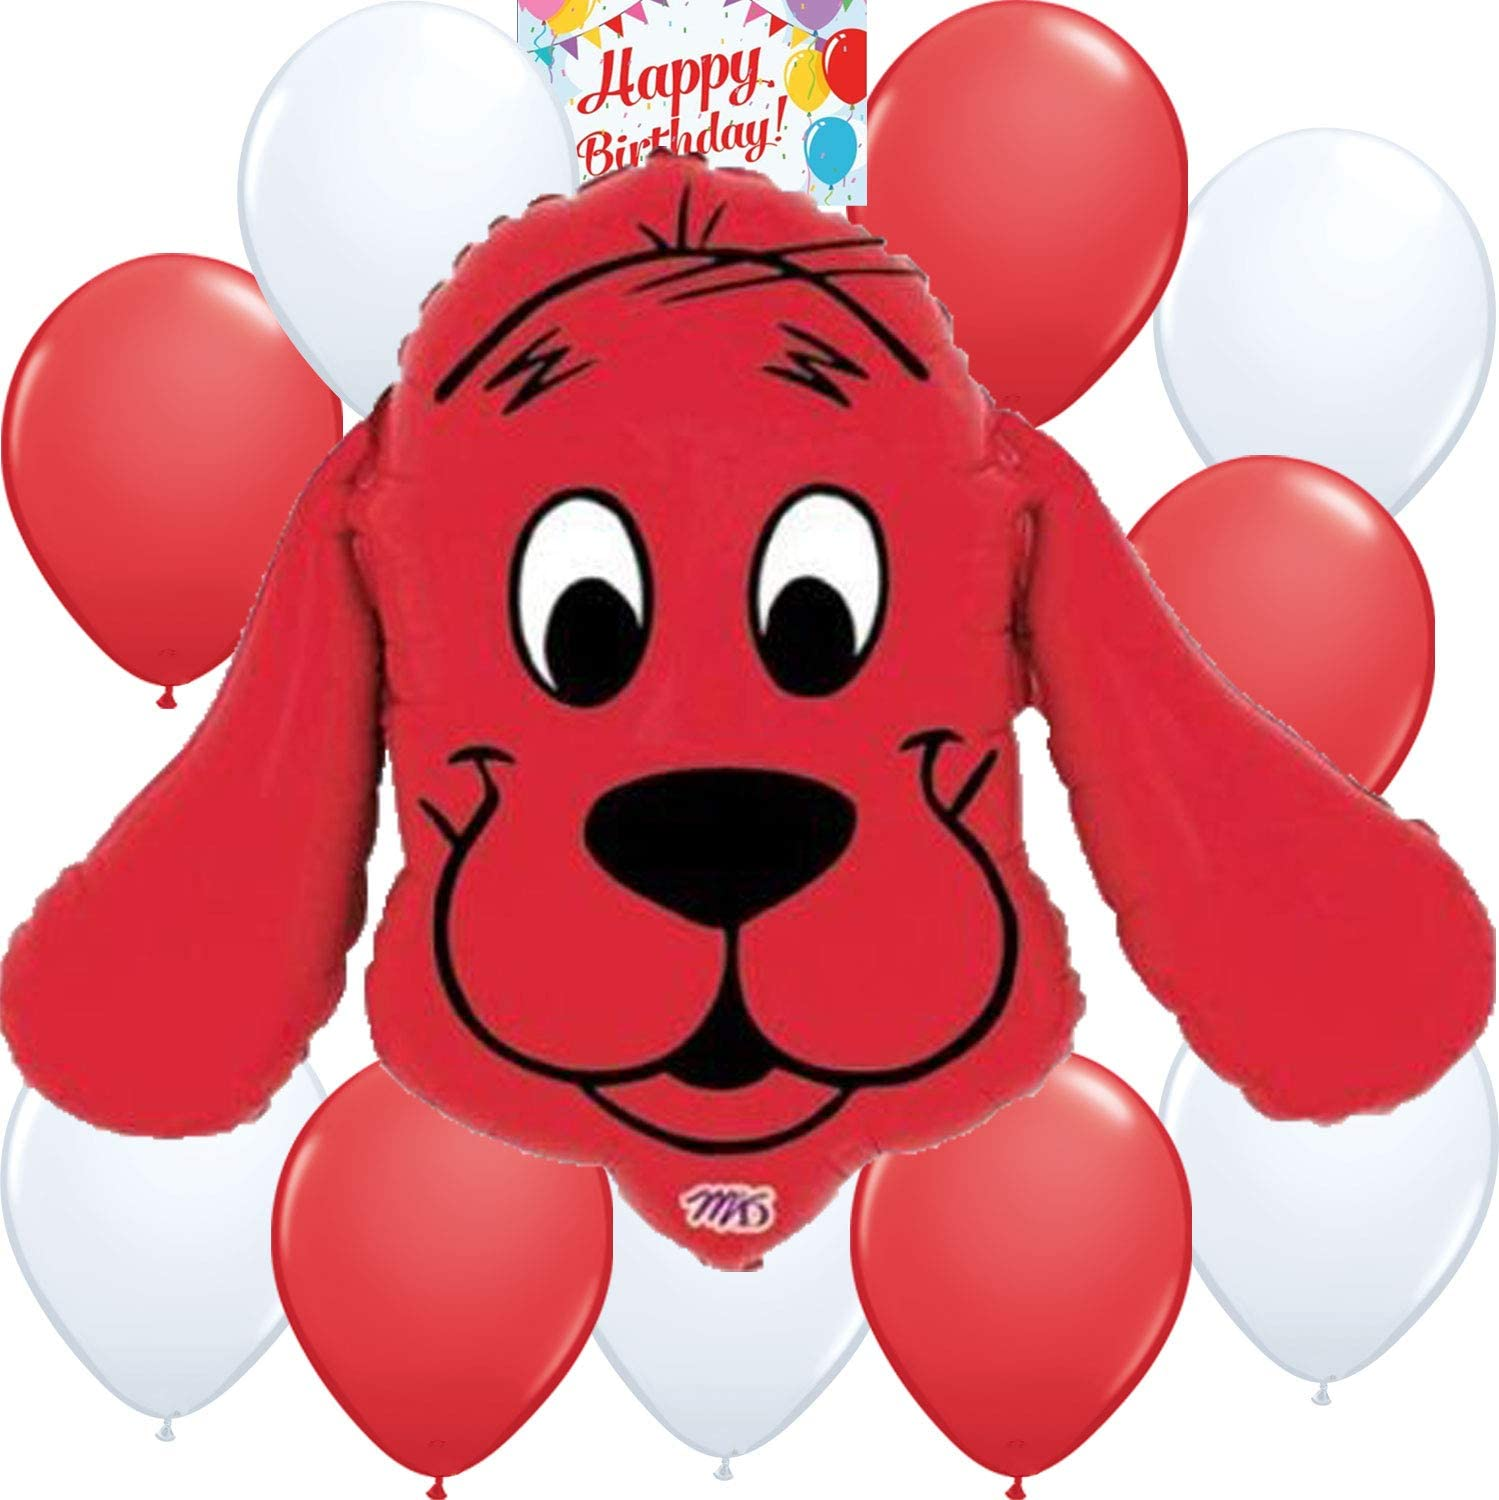 Clifford the Big Red Dog Big Balloon Birthday Decoration Bundle